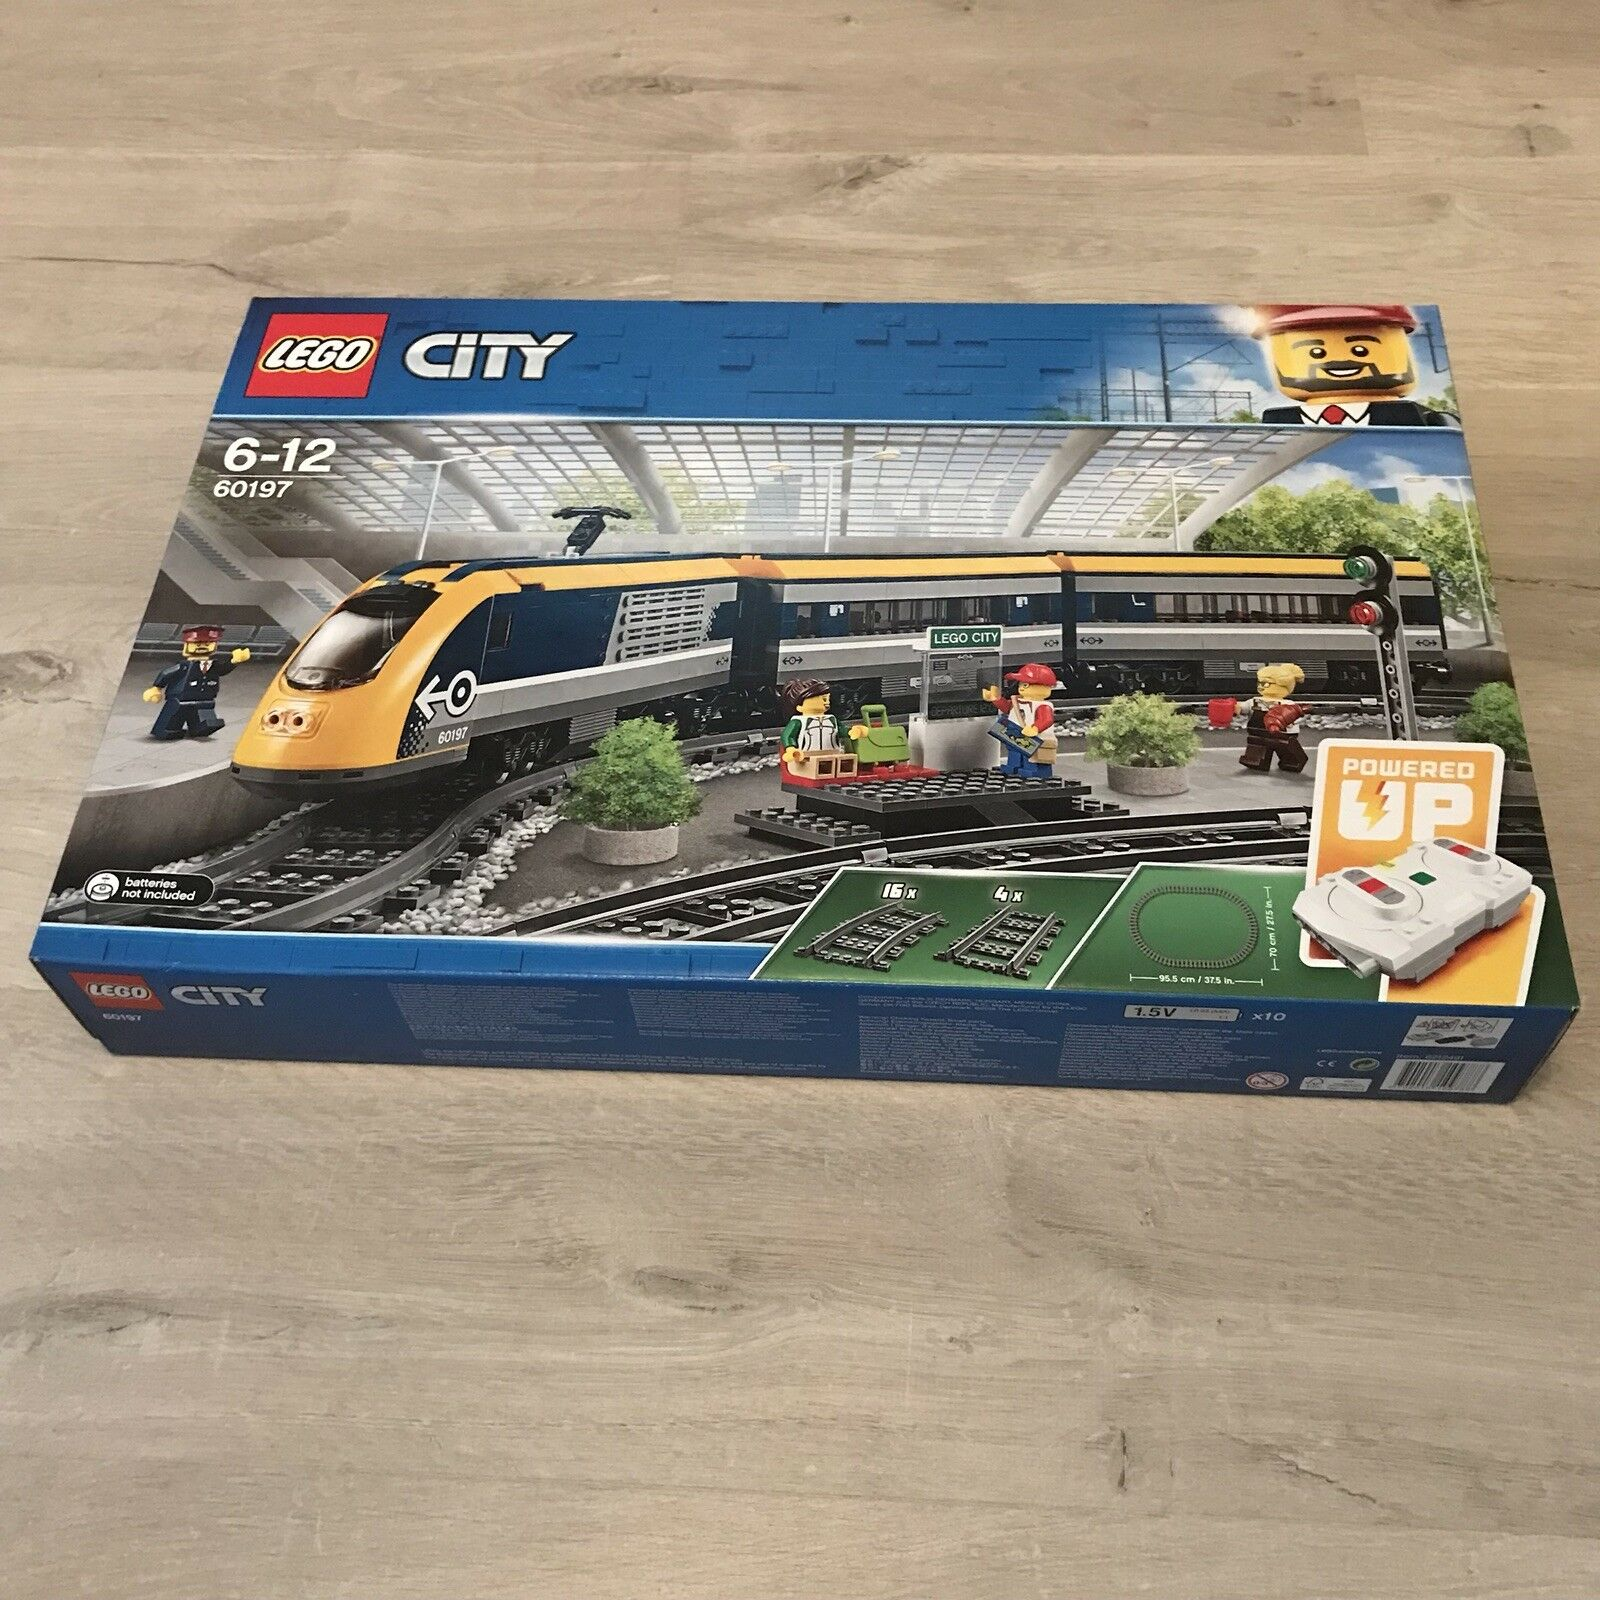 60197 LEGO City Trains Passenger Train 677 Pieces Age 6+ New Release for 2018